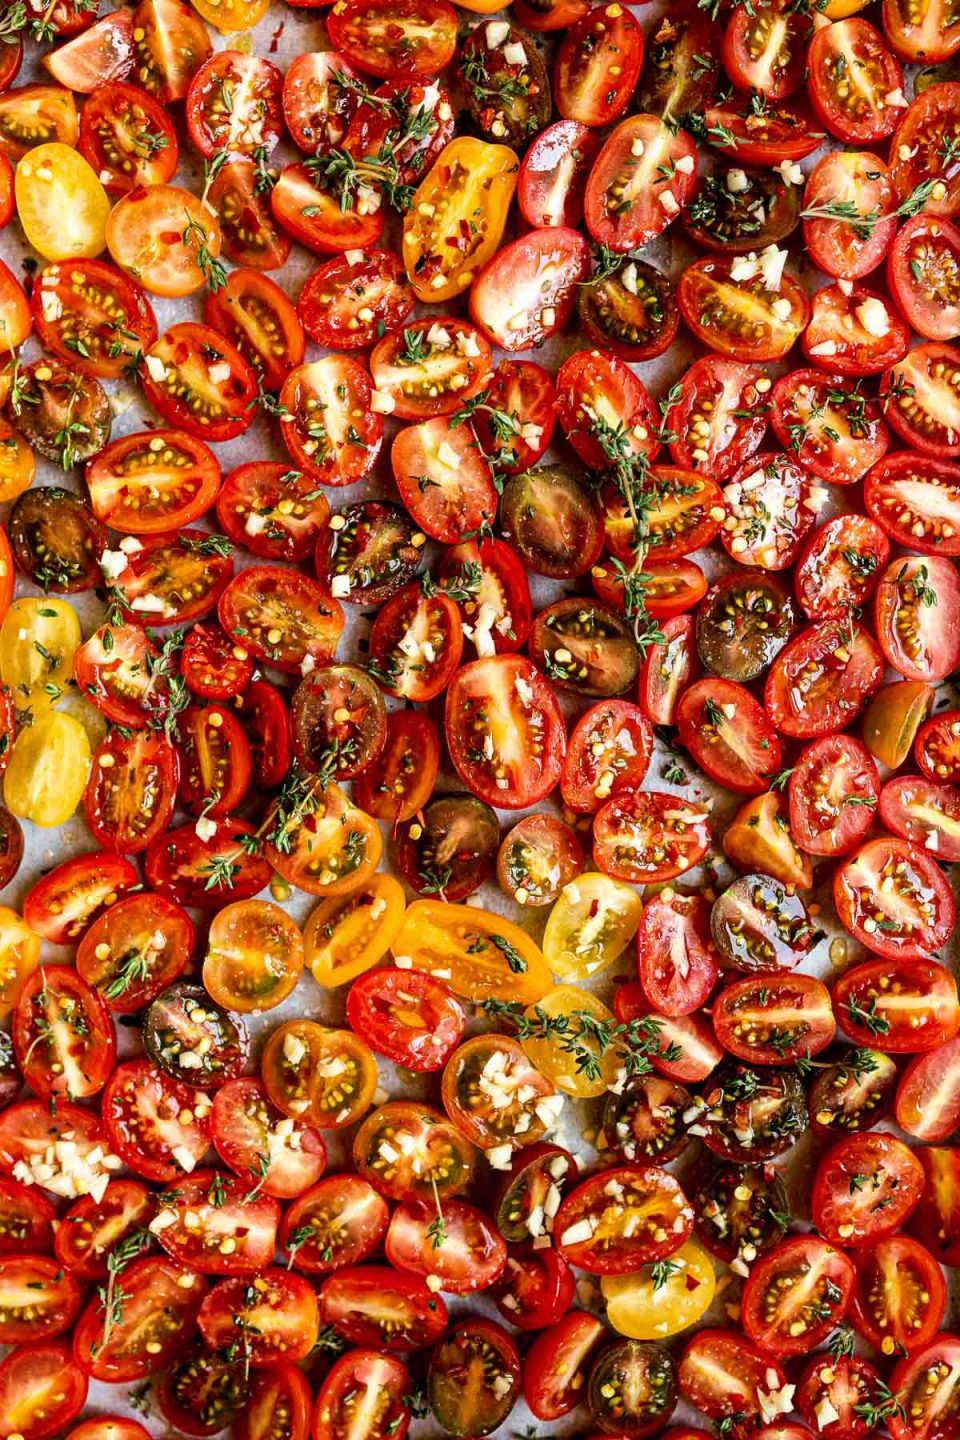 Raw cherry tomatoes arranged on a sheet pan lined with white parchment paper - sprinkled with fresh herbs & garlic ready to be slow roasted.